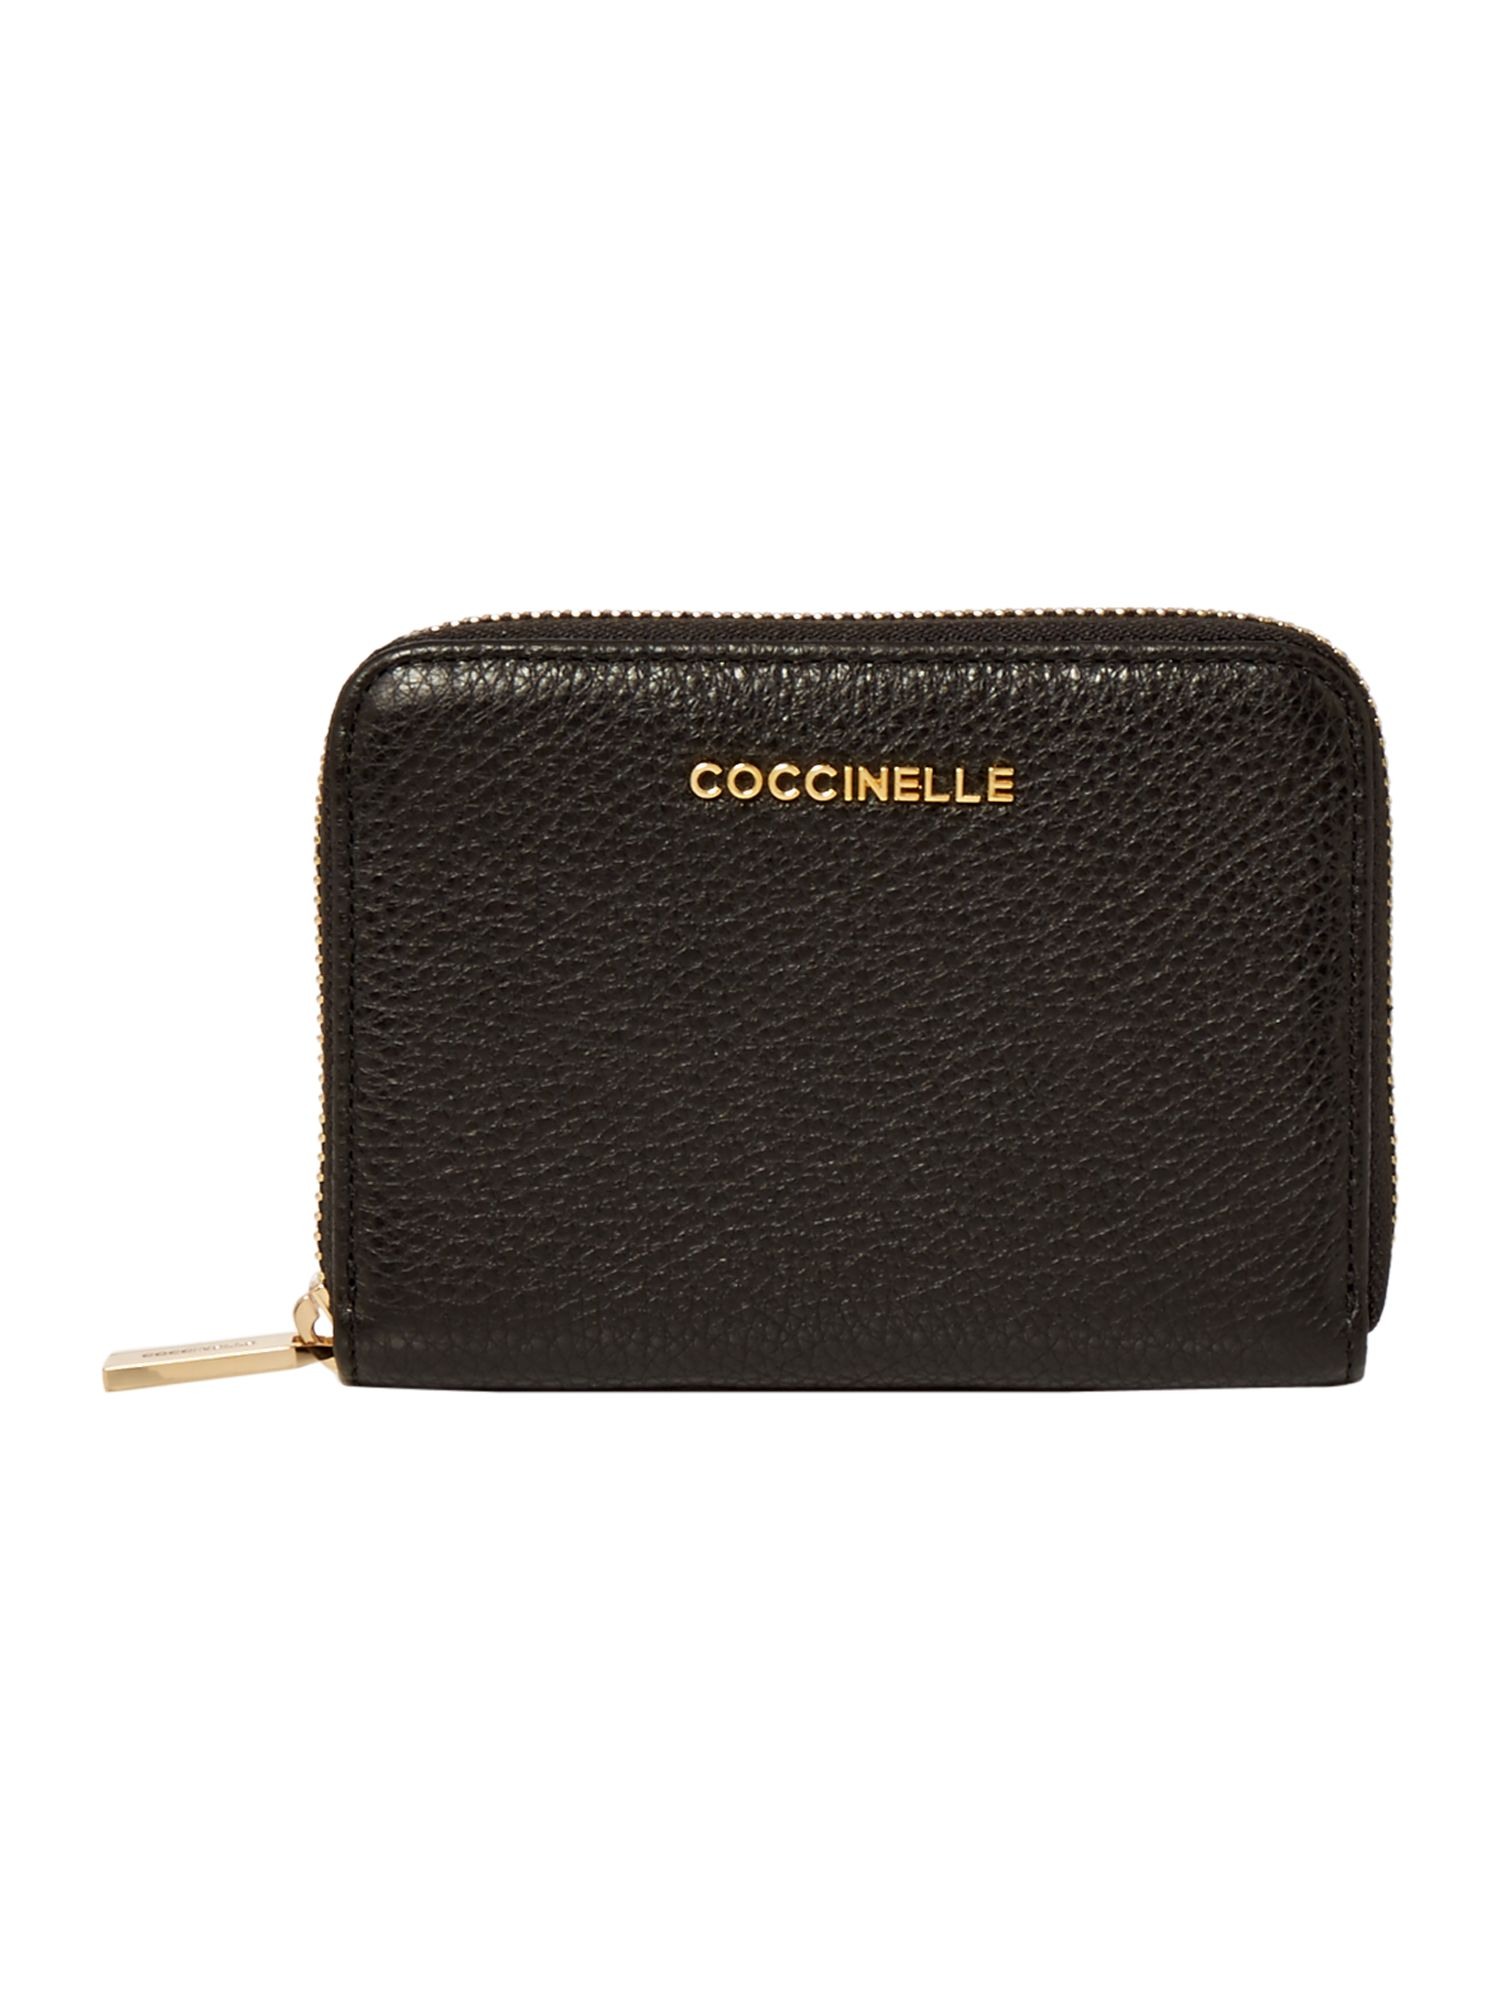 Coccinelle Metallic soft leather small zip around, Black